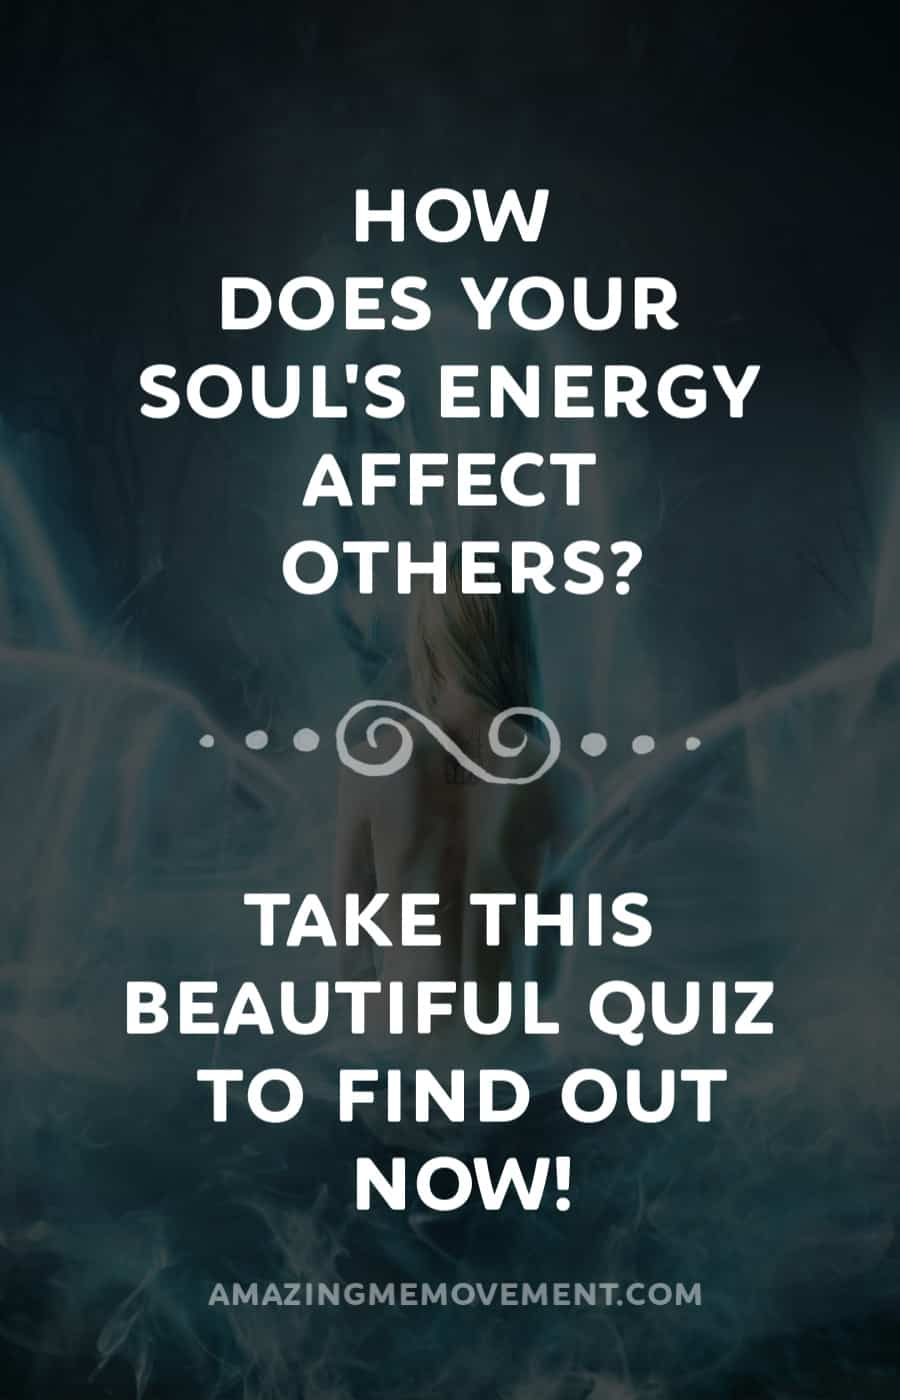 how does your soul energy affect others?